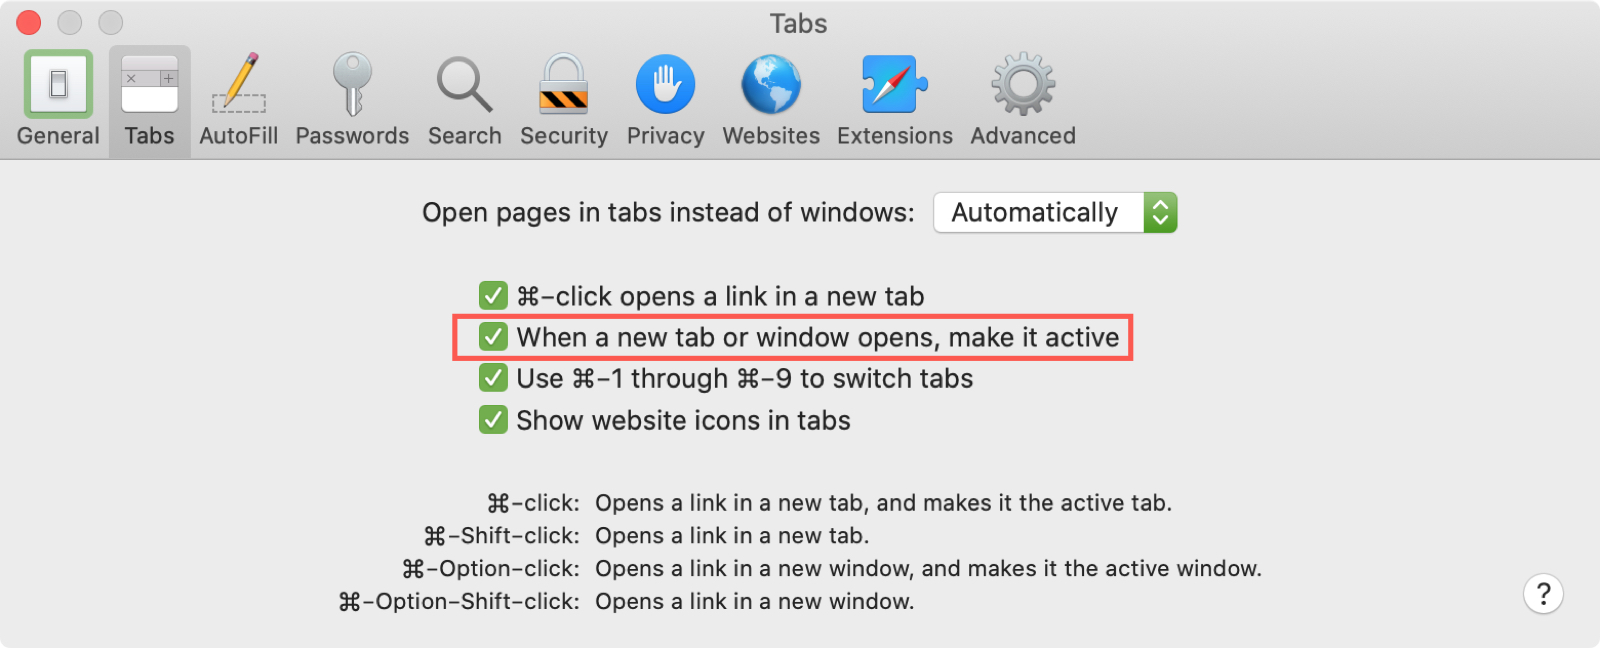 Safari Preferences Tabs Make Active